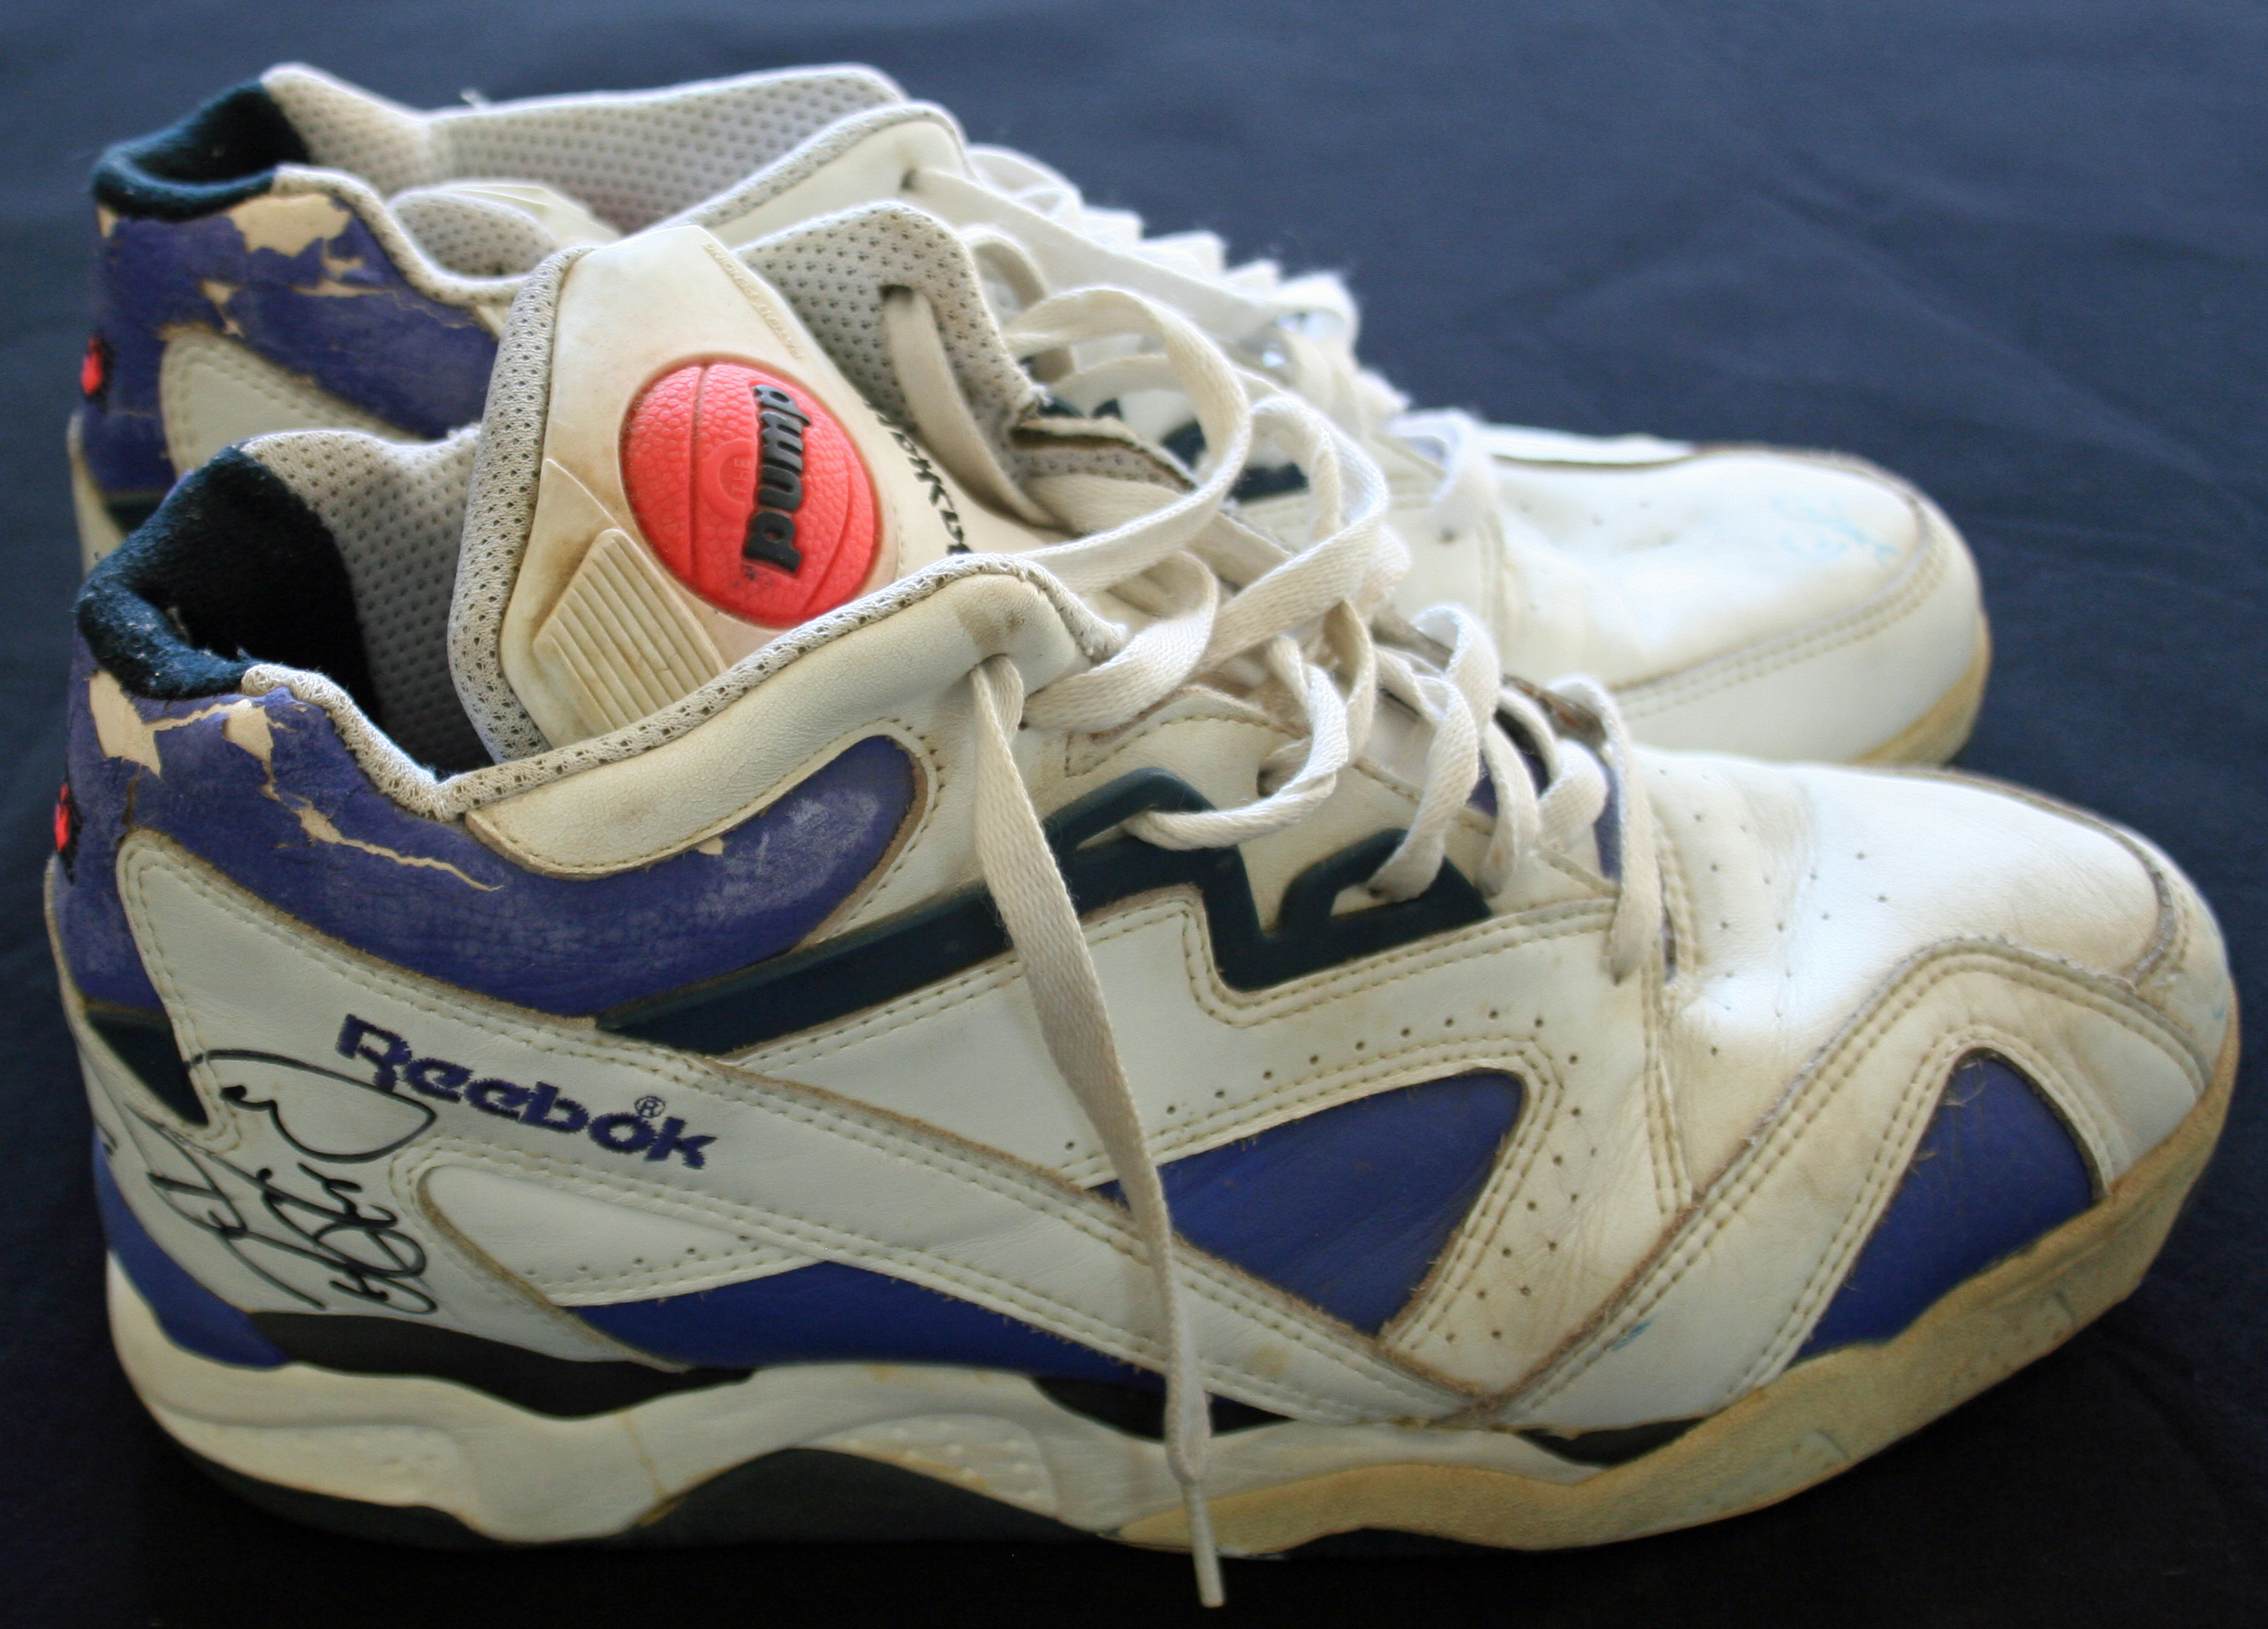 a9c68641acd c.1990s Dennis Rodman Game Worn   Signed Reebok Basketball Sneakers (ex.